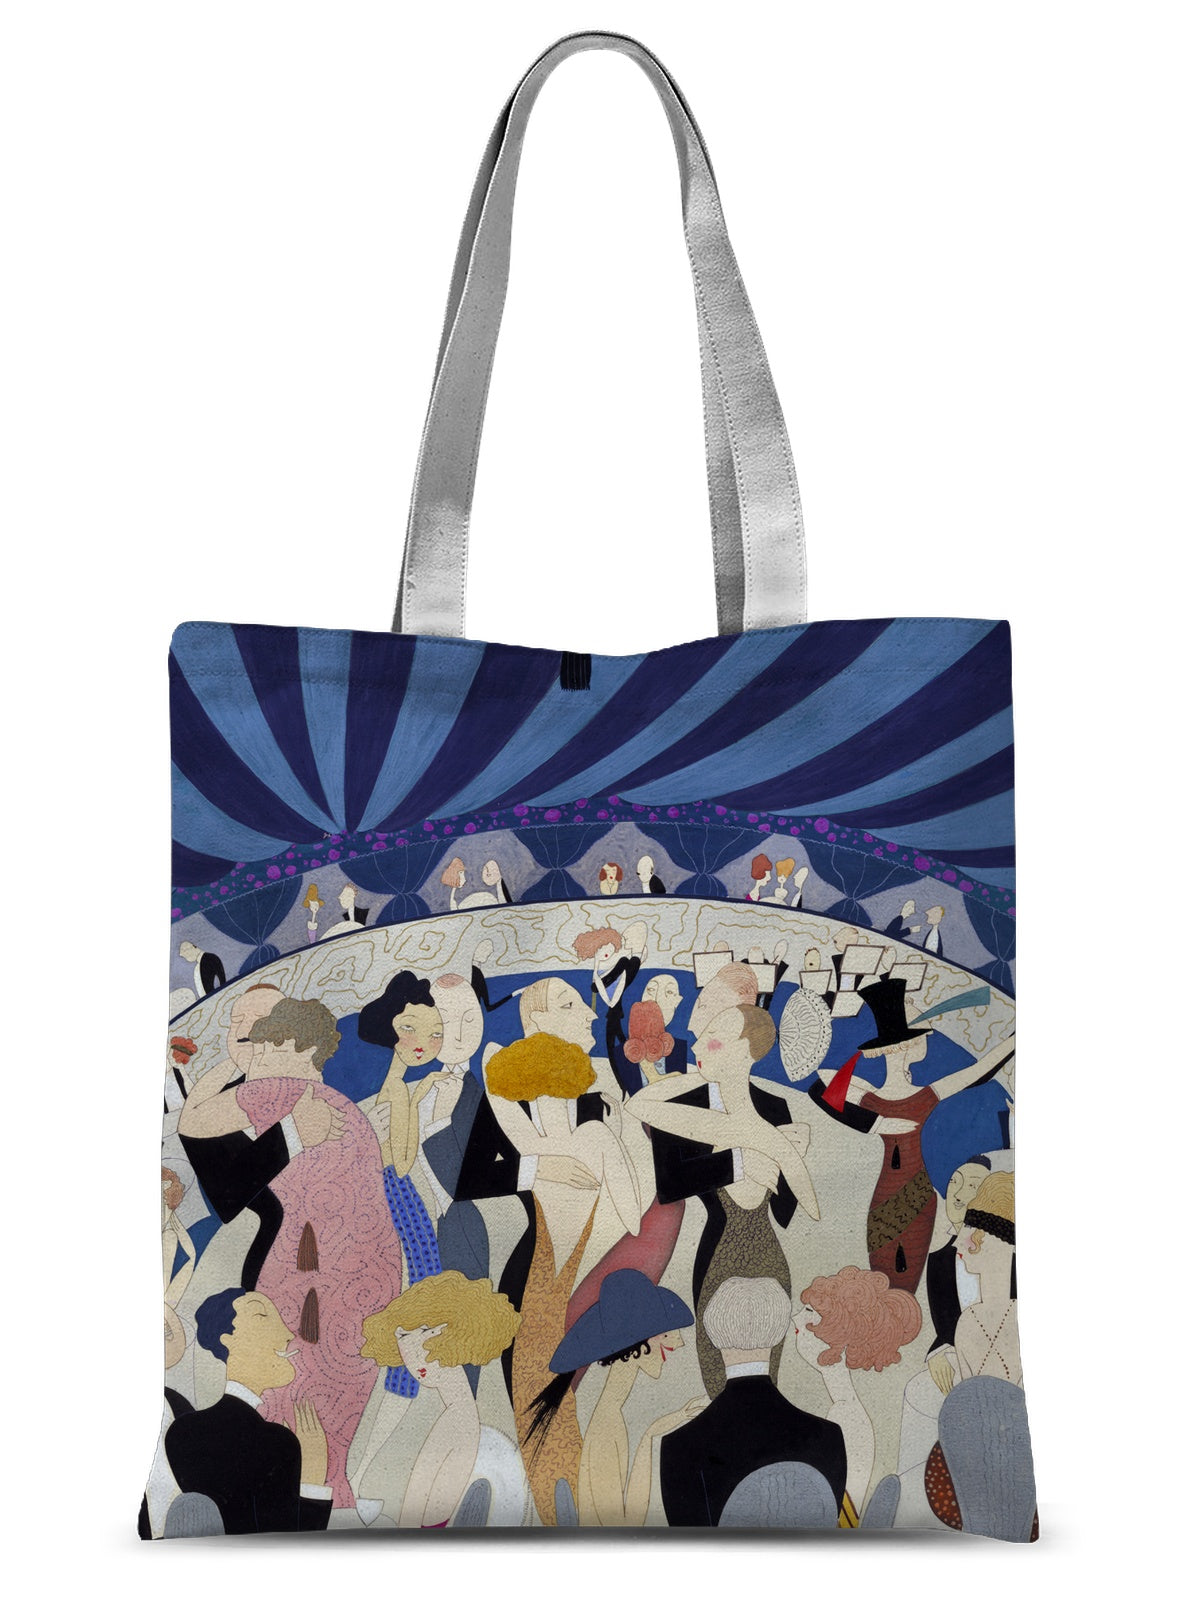 Couples Dancing in a Nightclub by Anne Harriet Fish - 1921 - Sublimation Tote Bag